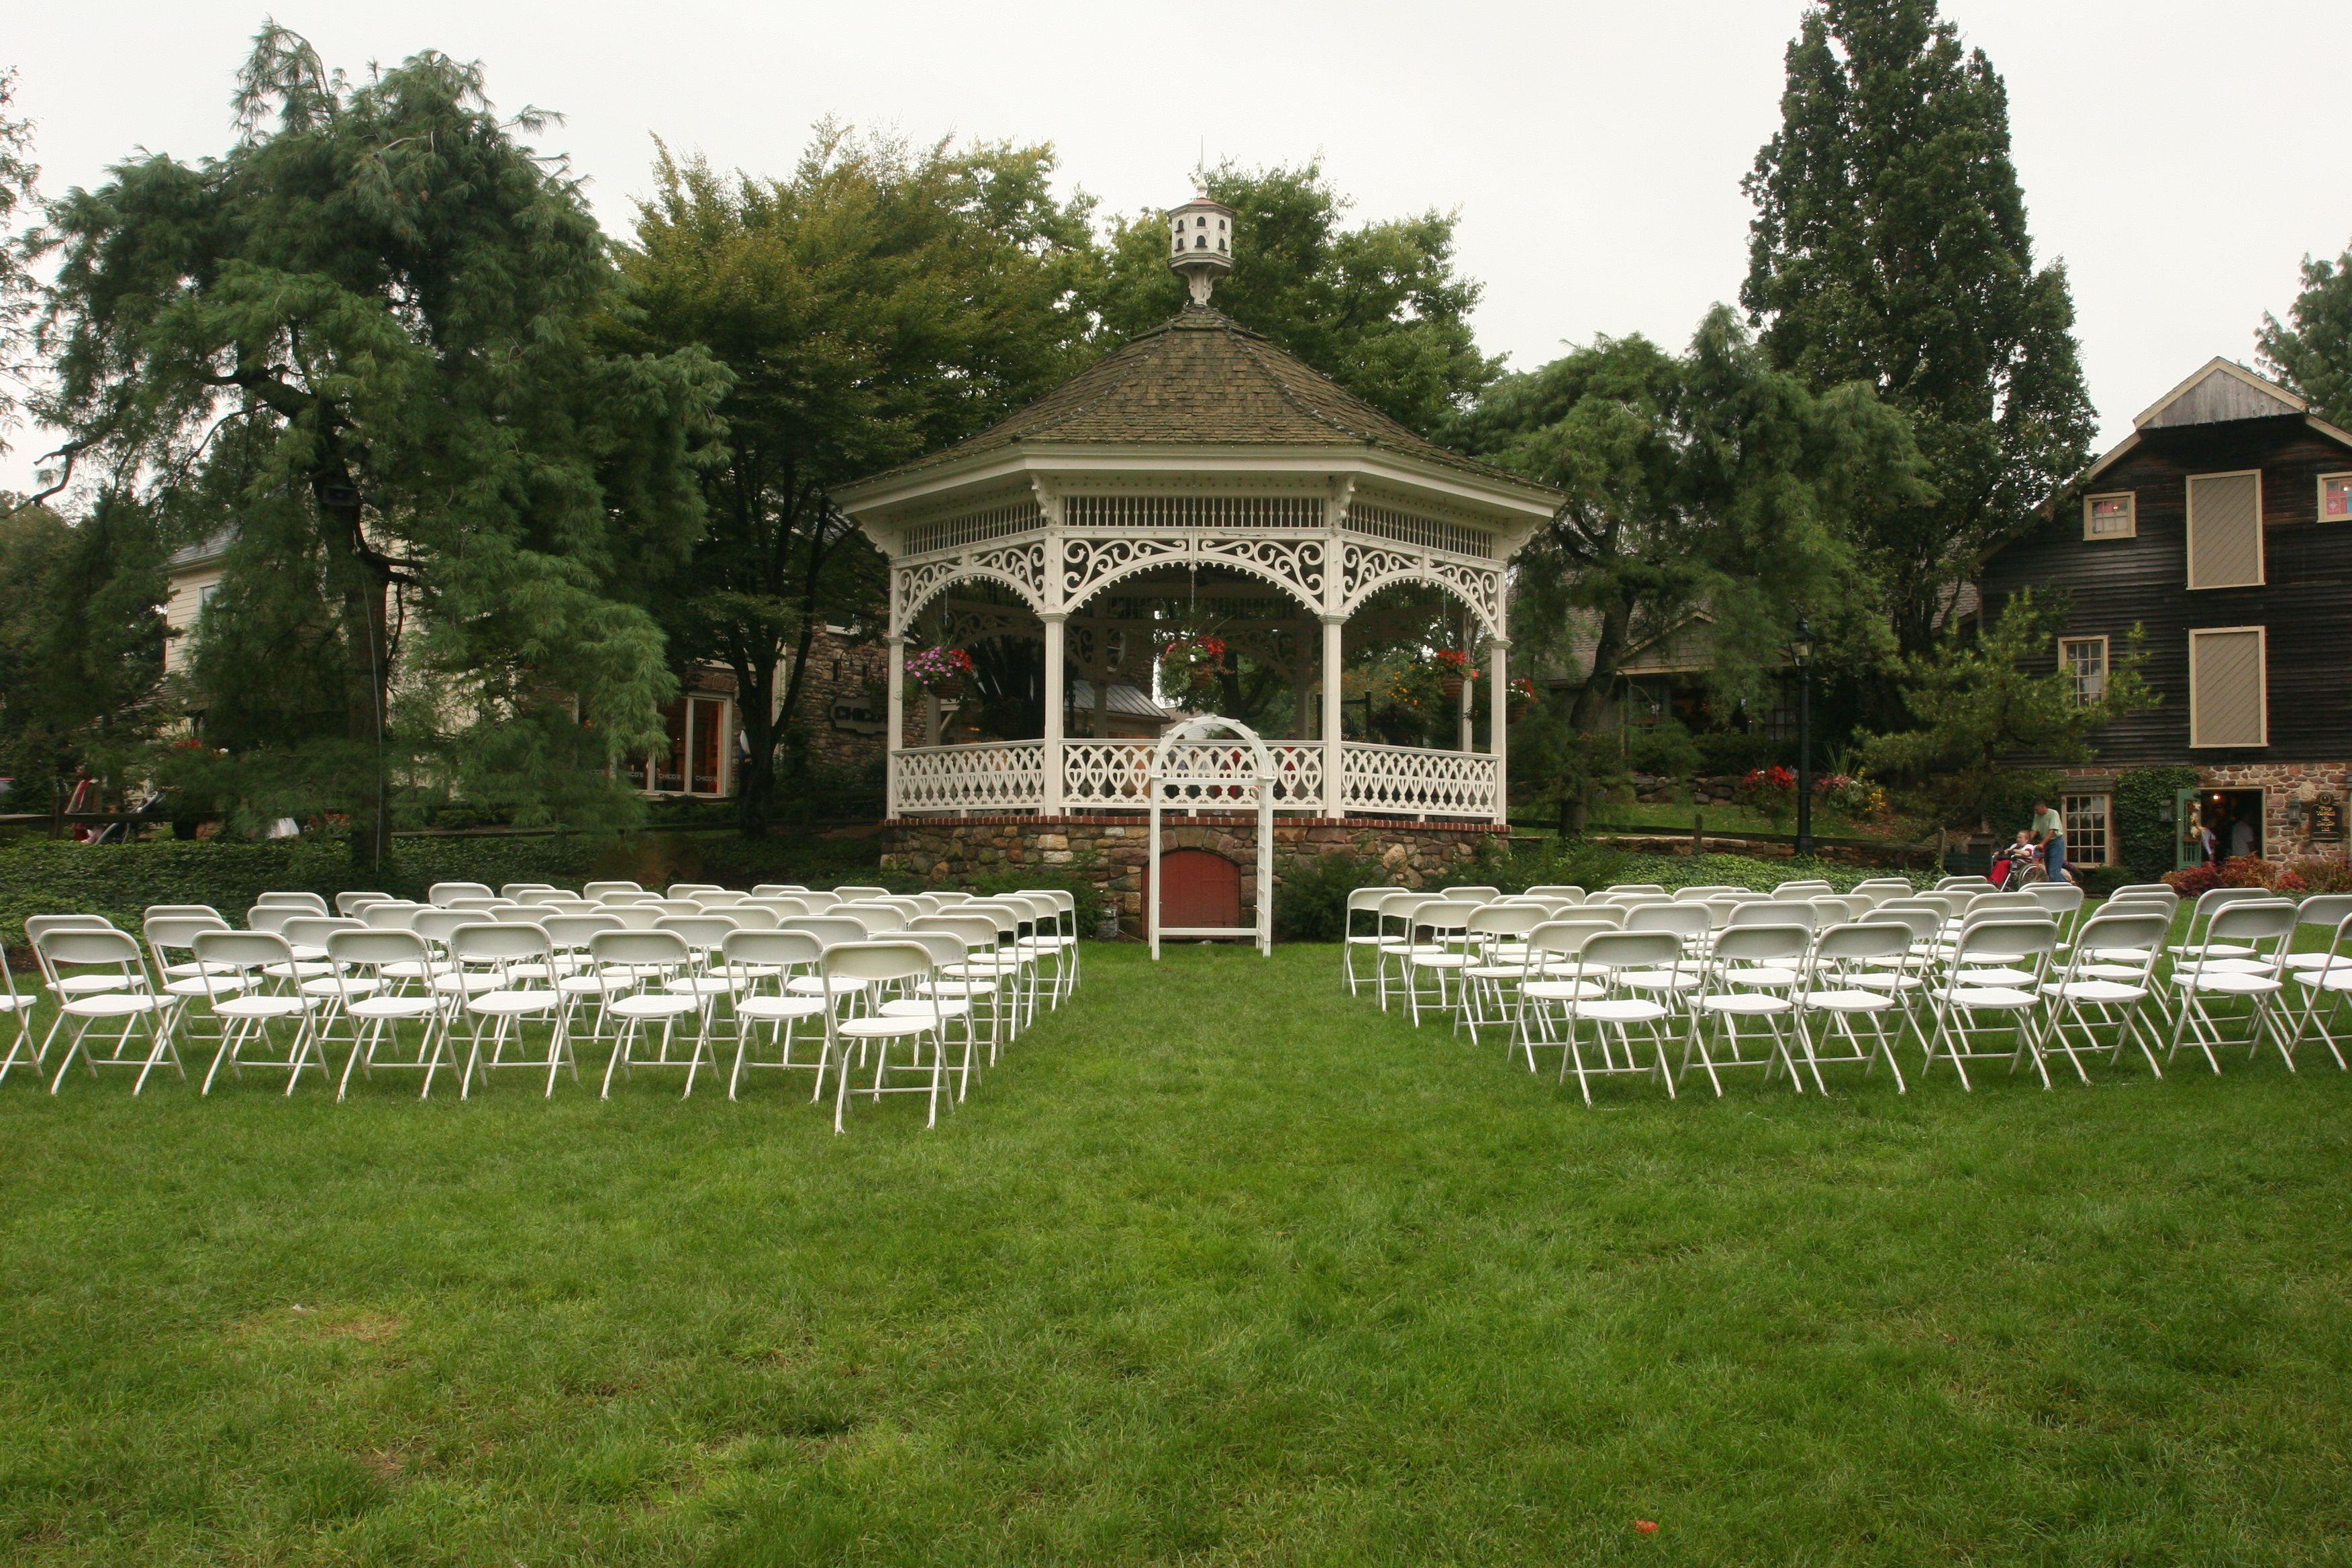 Peddler S Village We Re Everything But Ordinary Your Wedding Should Be Special And Something You Never Forget Let Our Talented Team Of Experts Help